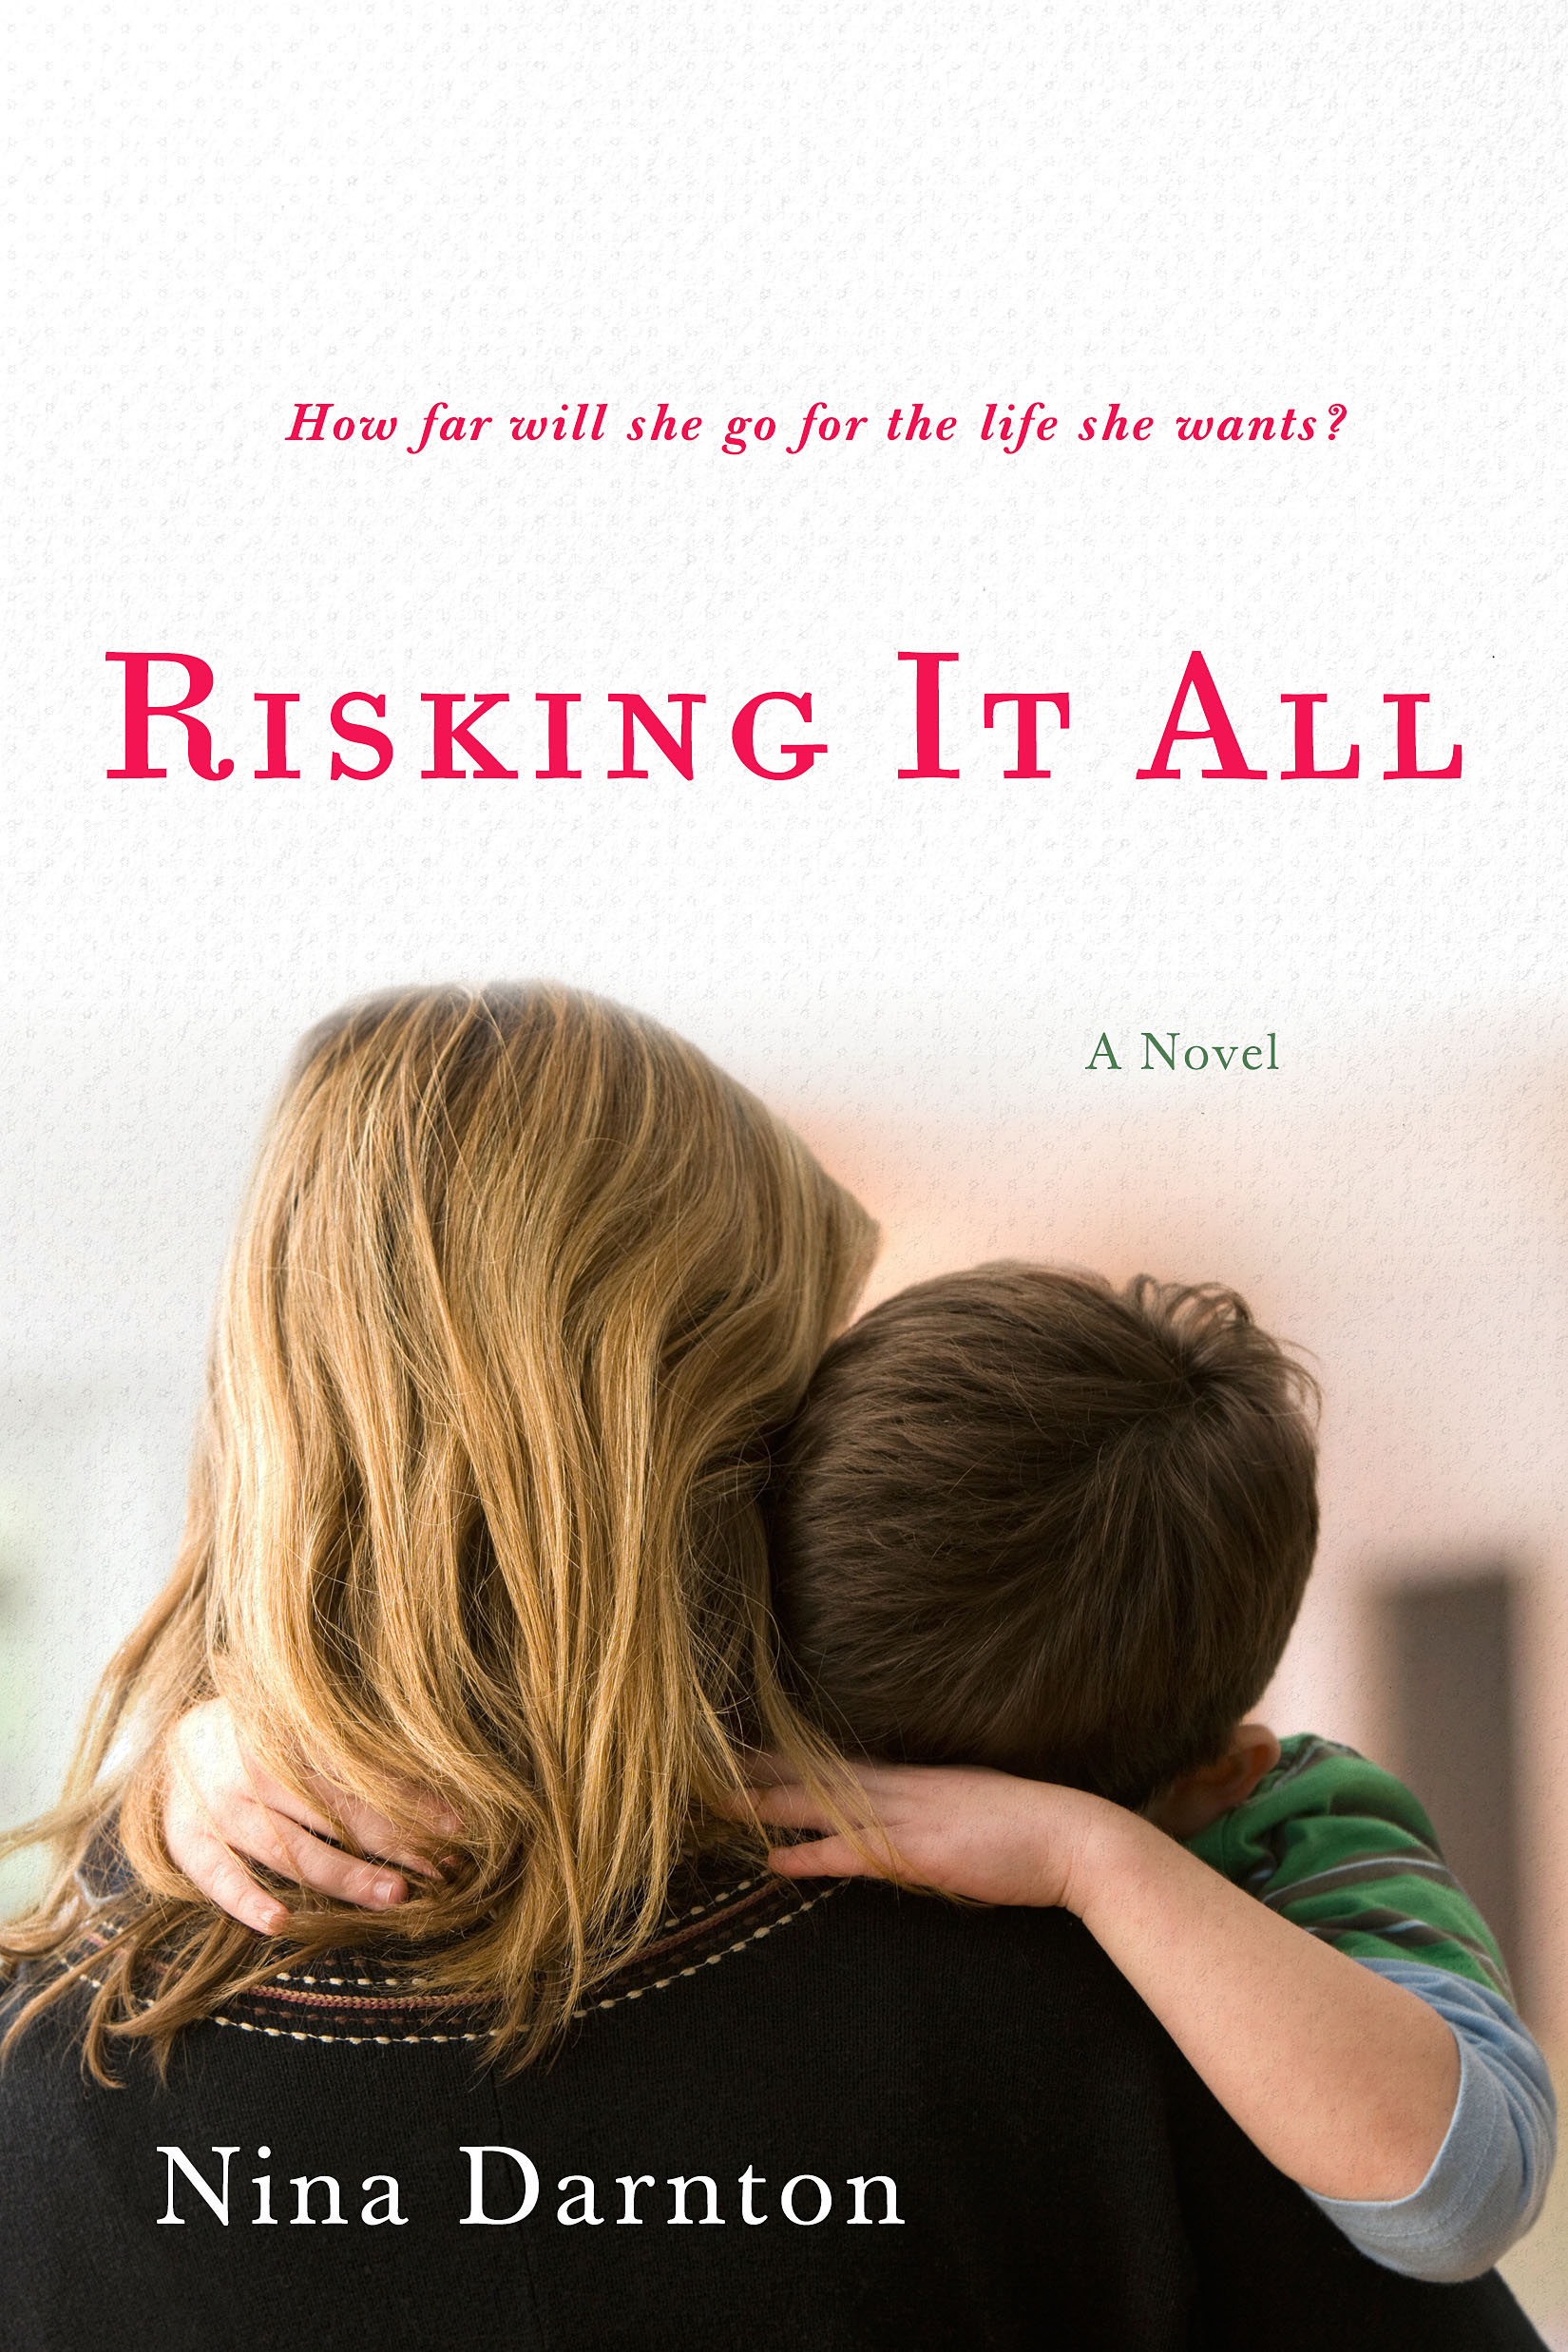 RISKING IT ALL by Nina Darnton